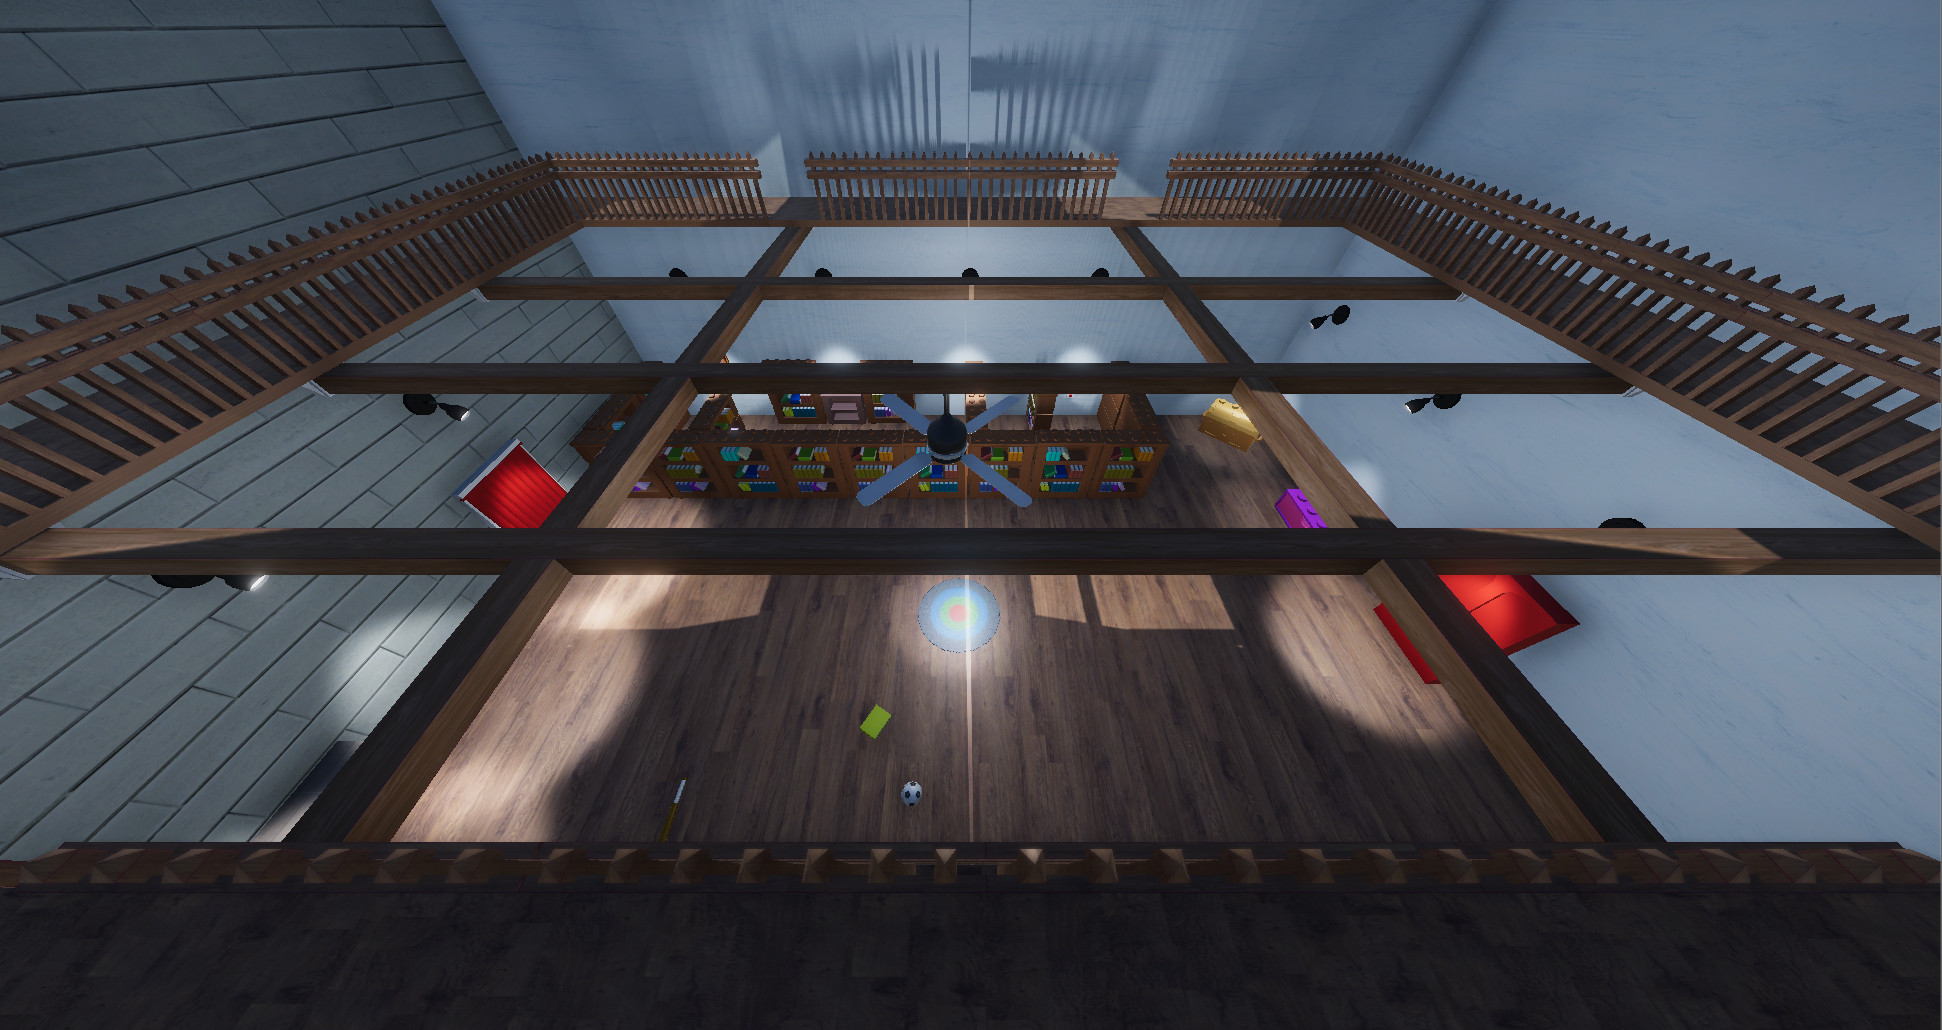 I textured the beams and flooring.